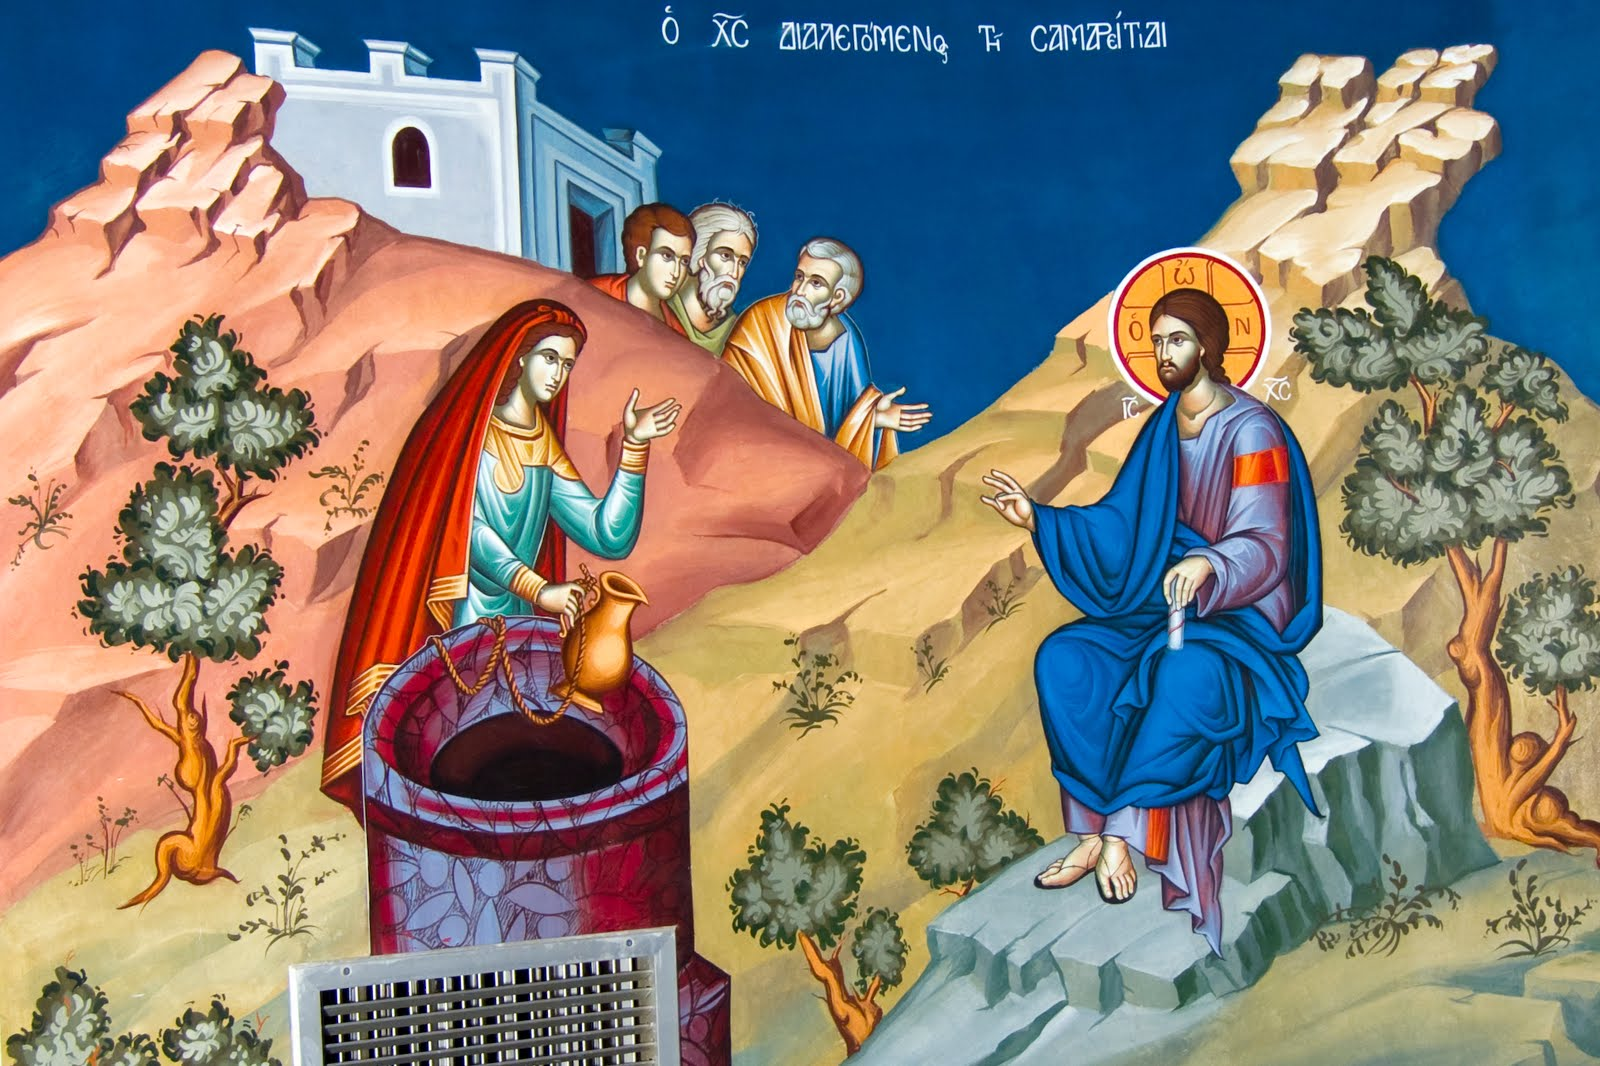 The Samaritan Woman – St. Photini – at Jacob's Well with the Lord